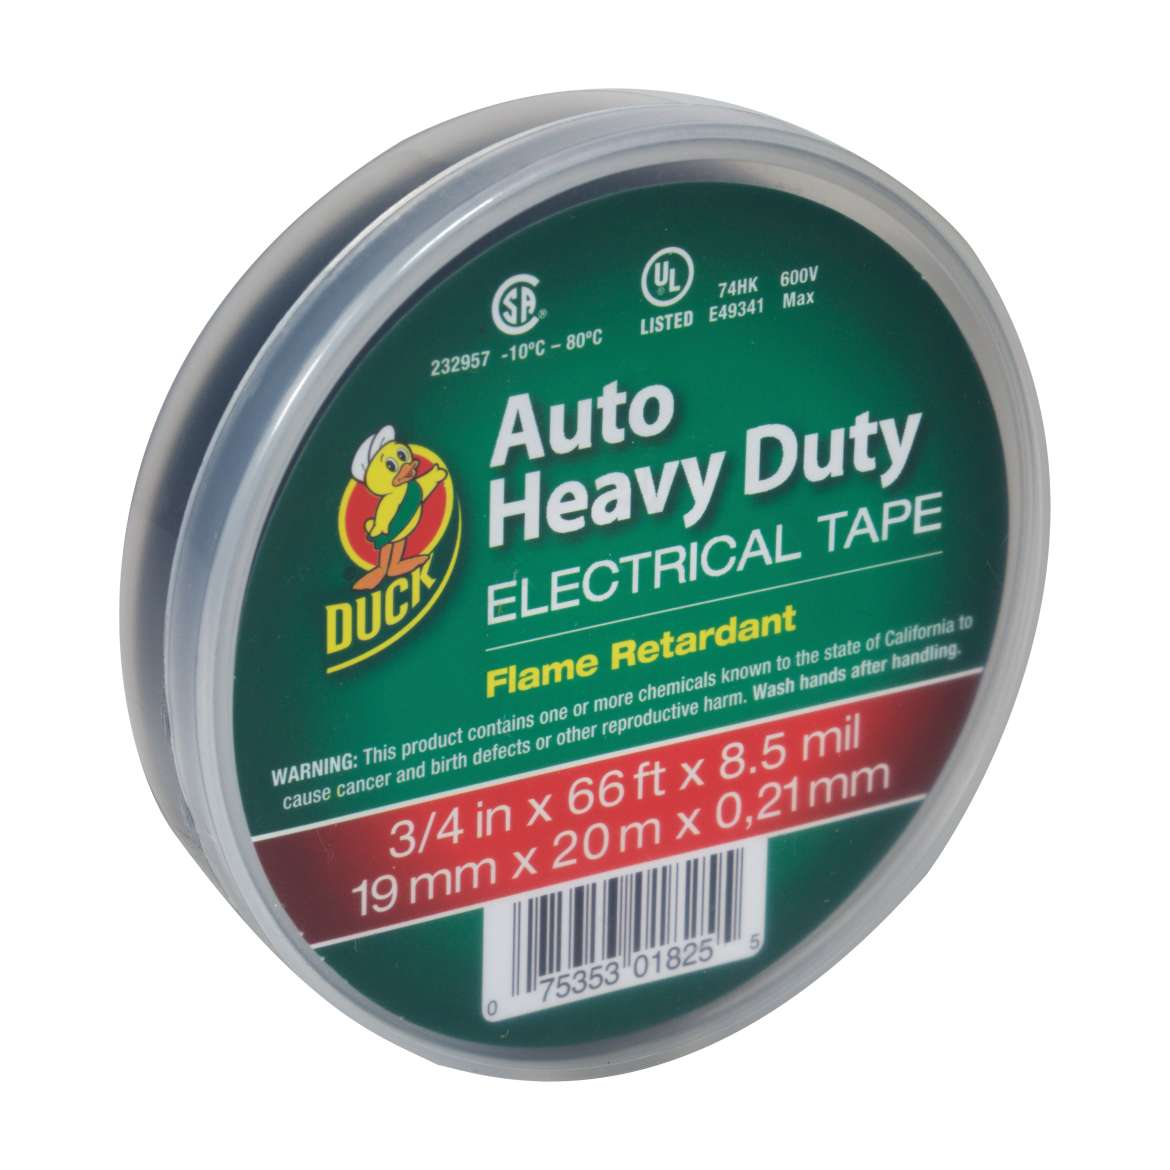 Heavy Duty Auto Electrical Tape Image